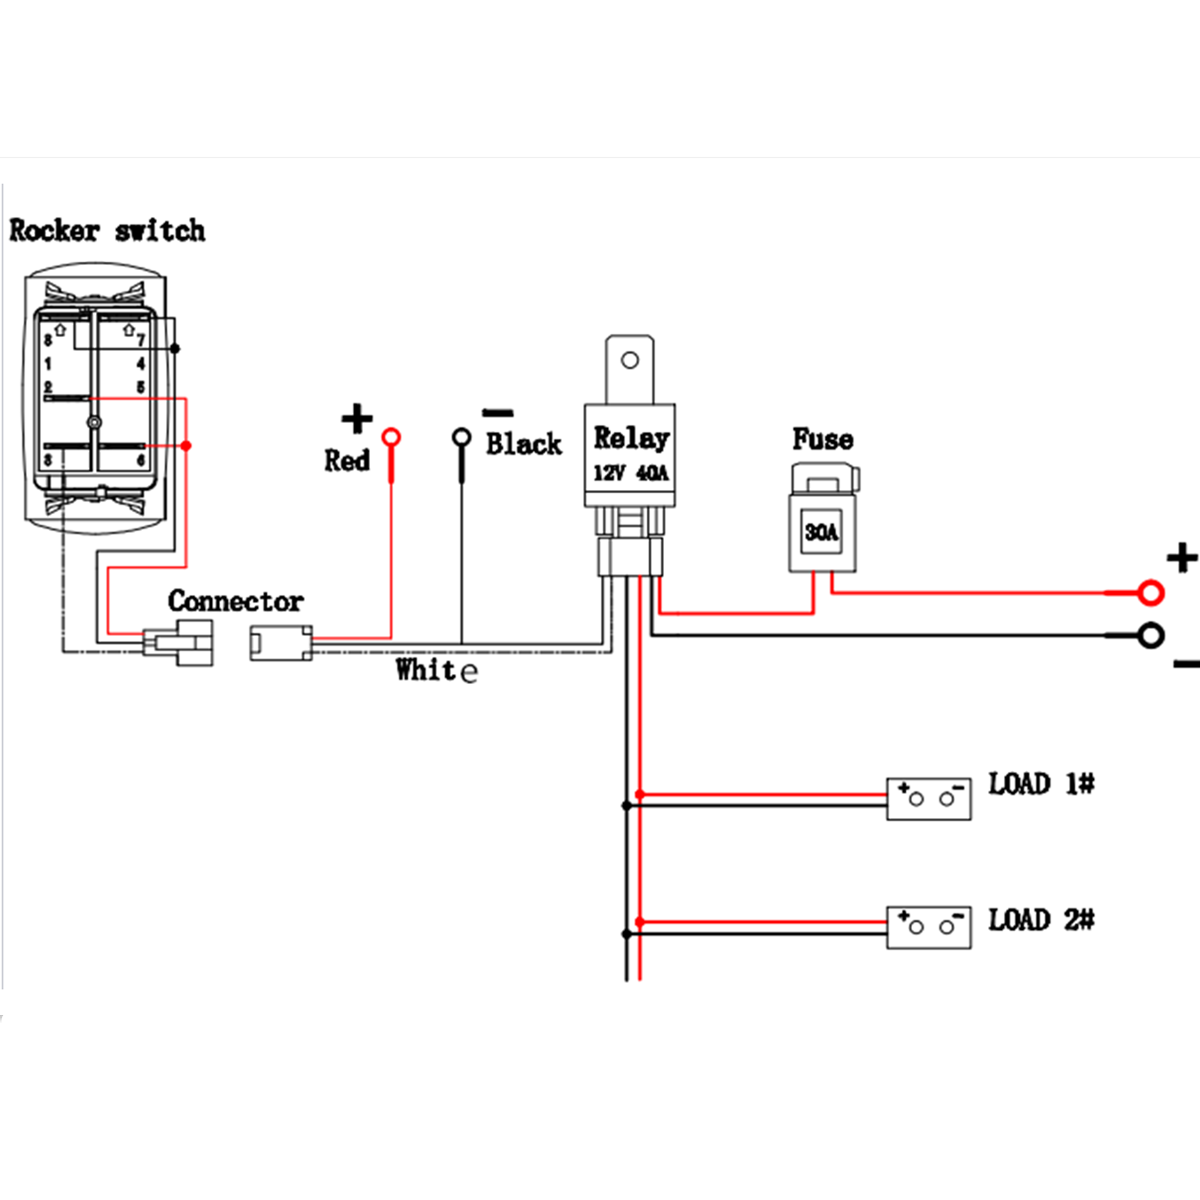 diy led light bar fuse box wiring diagram rh a30 reise ferienplan de